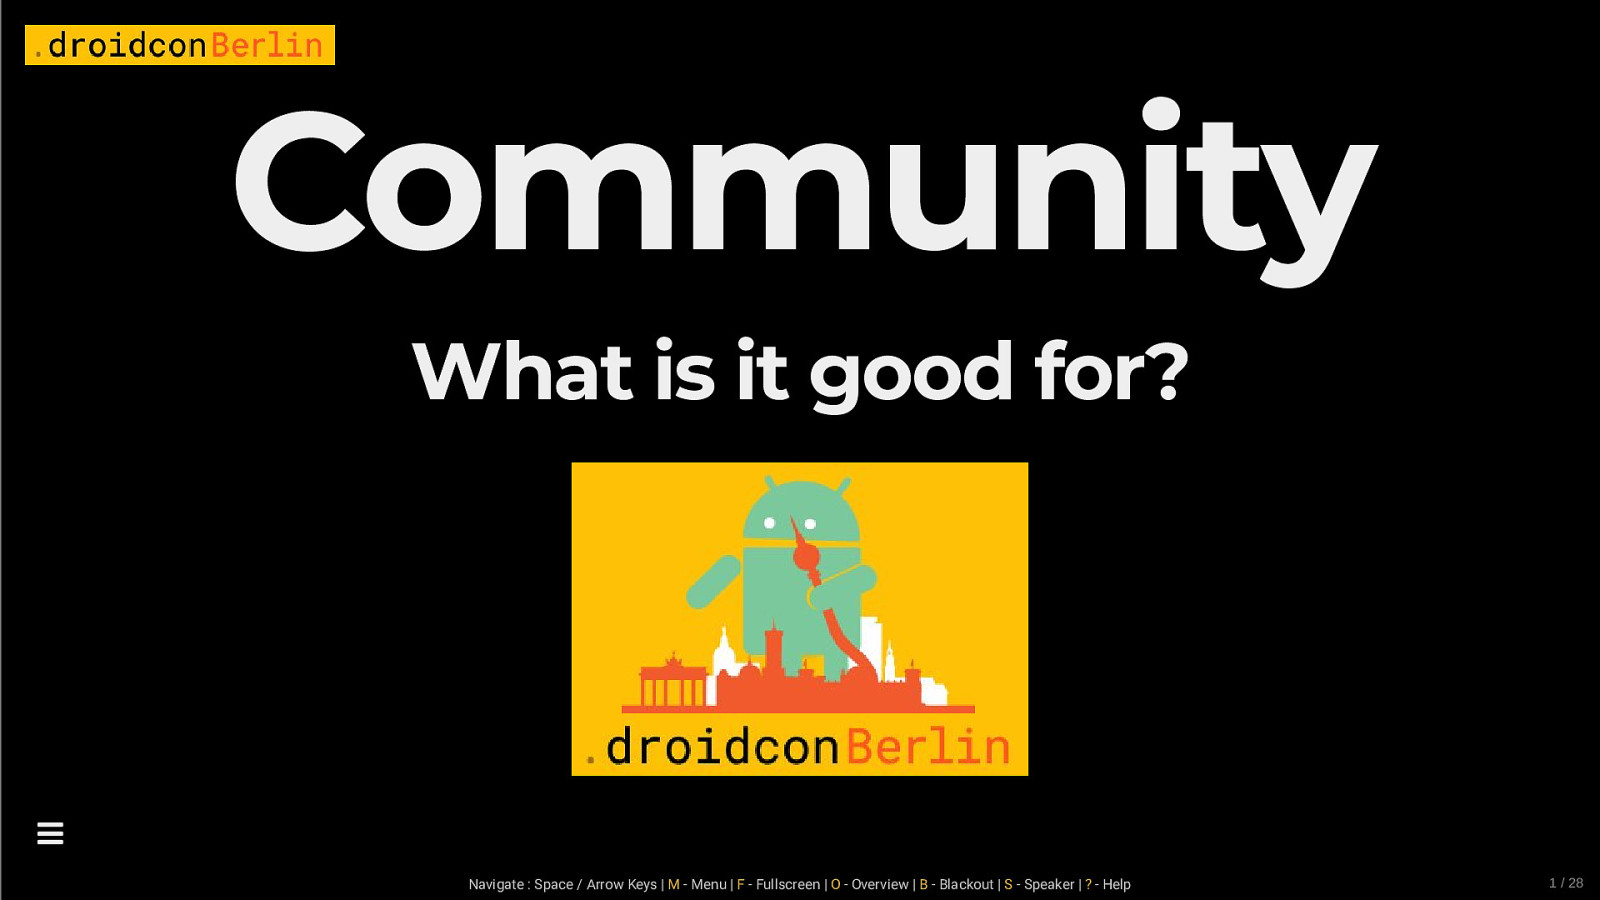 Community - What is it good for?